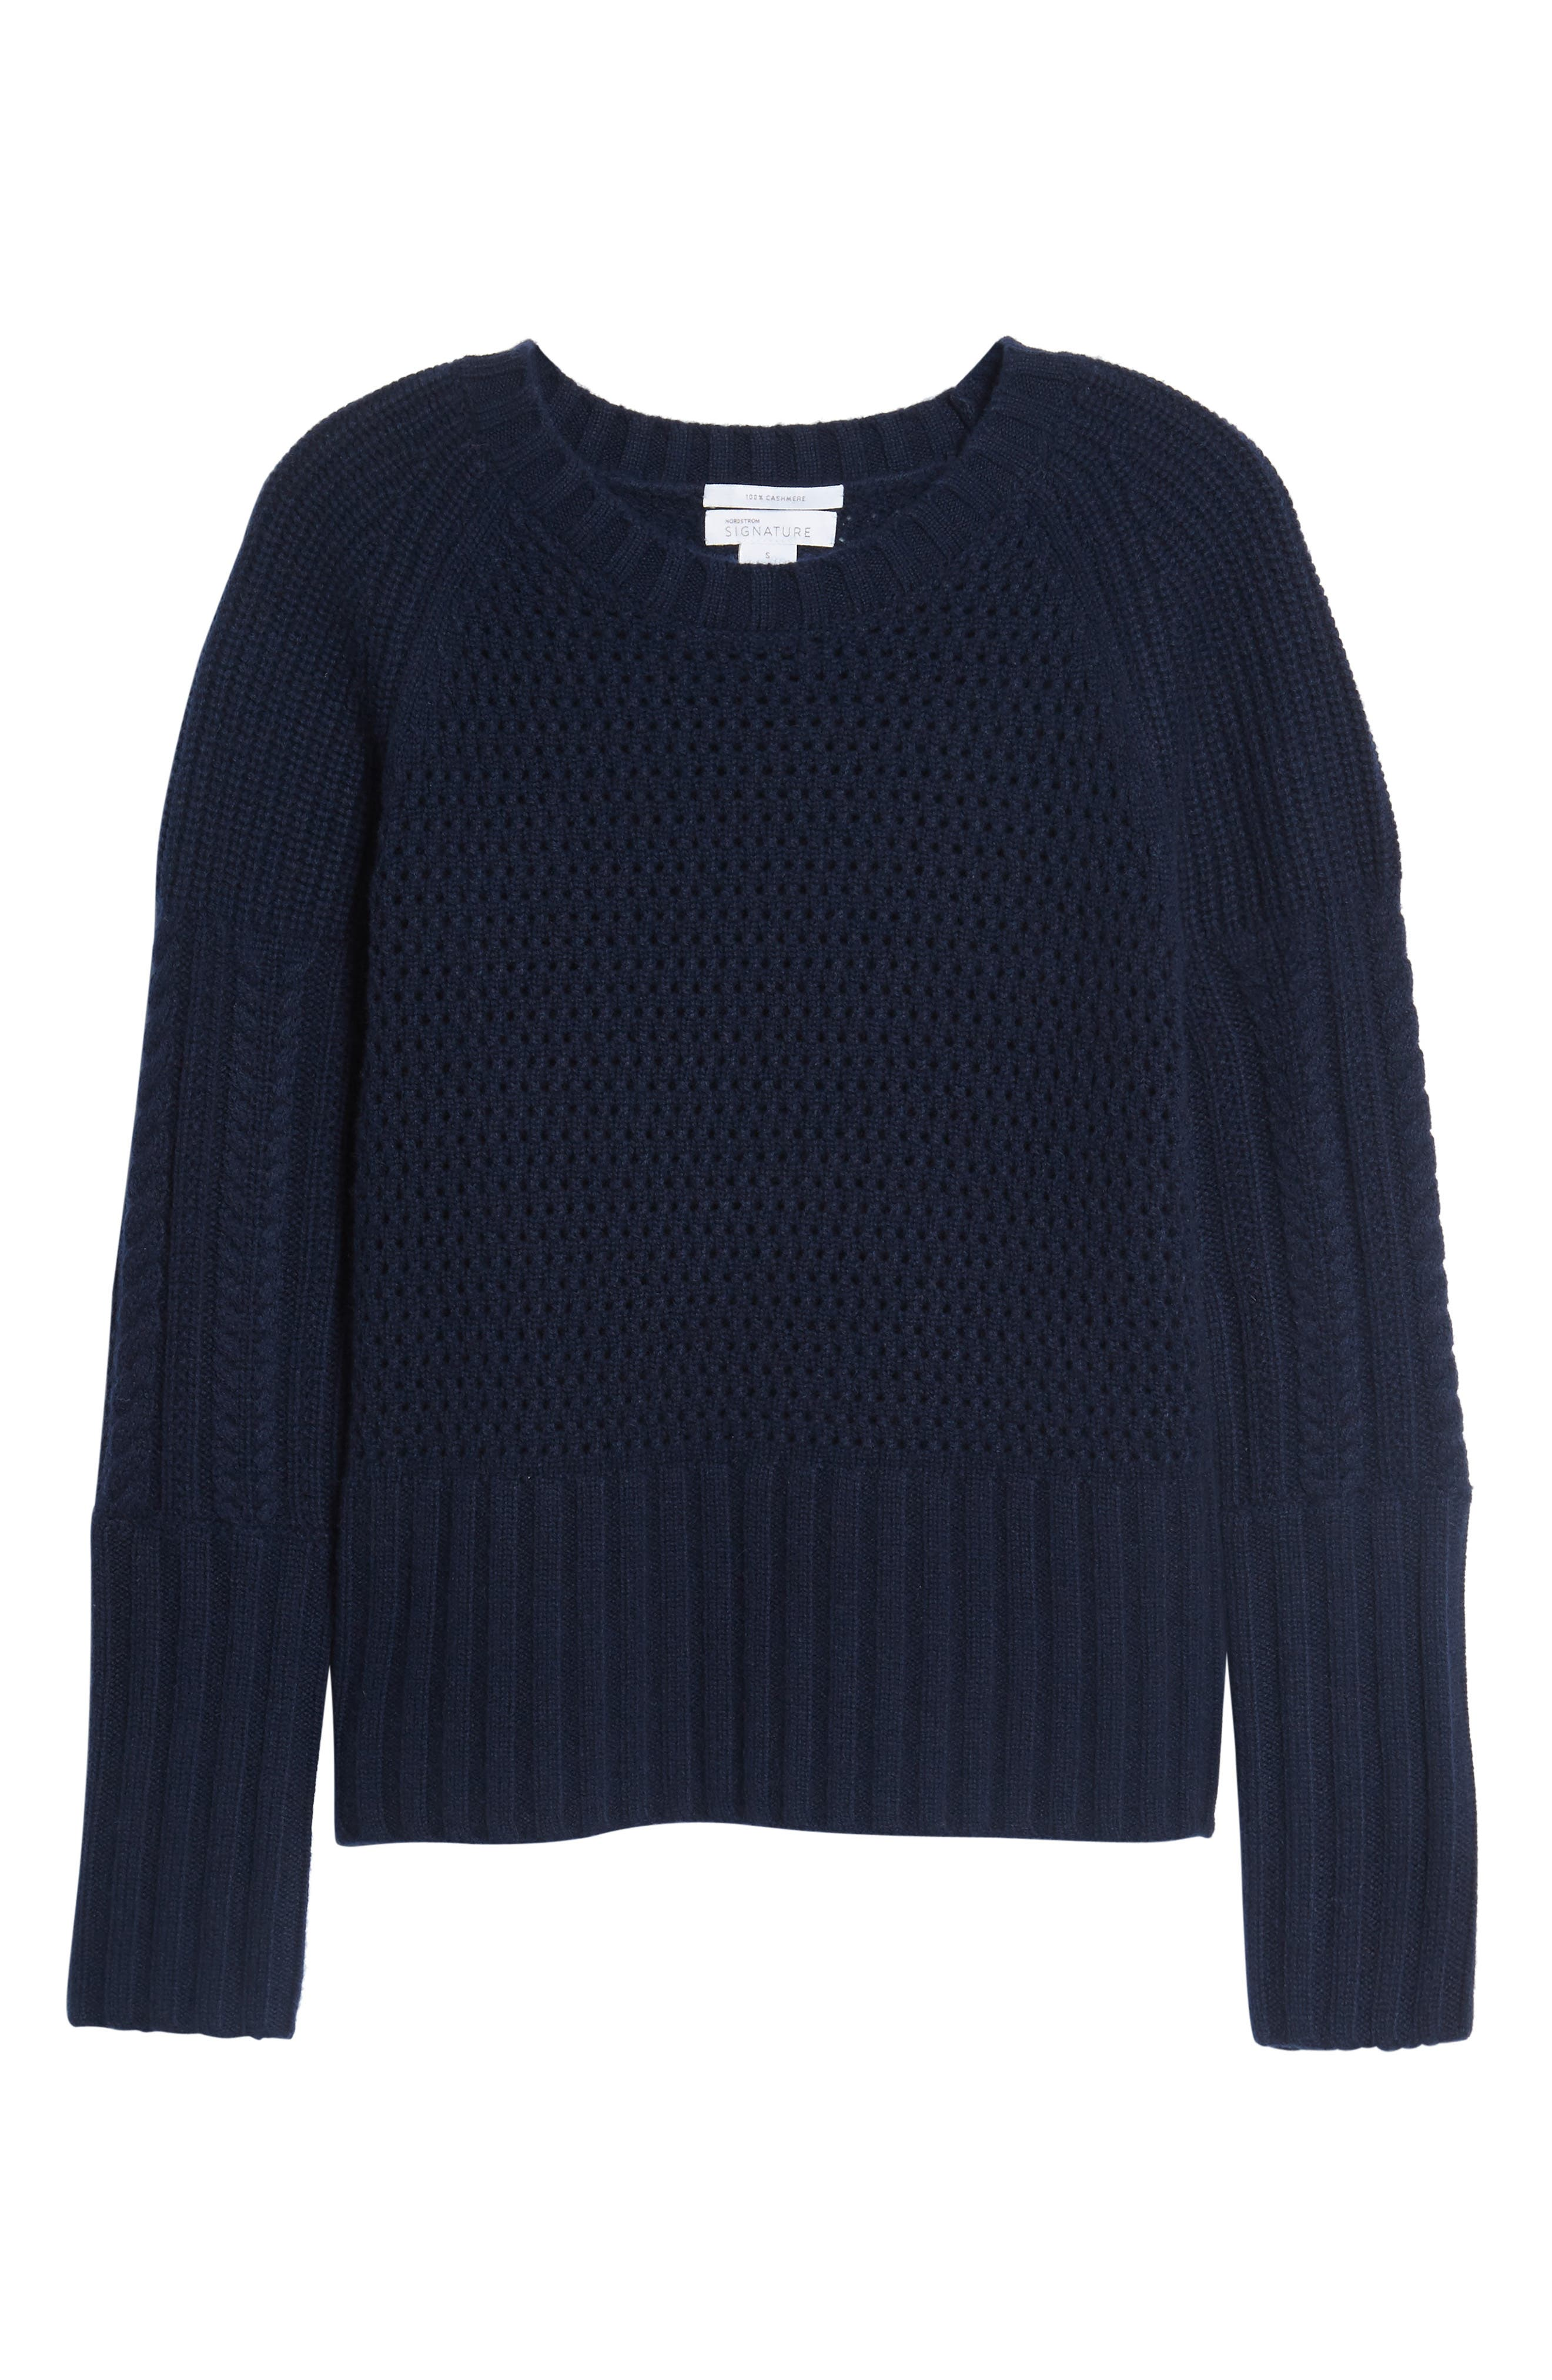 Mixed Stitch Cashmere Sweater,                             Alternate thumbnail 6, color,                             Navy Medieval